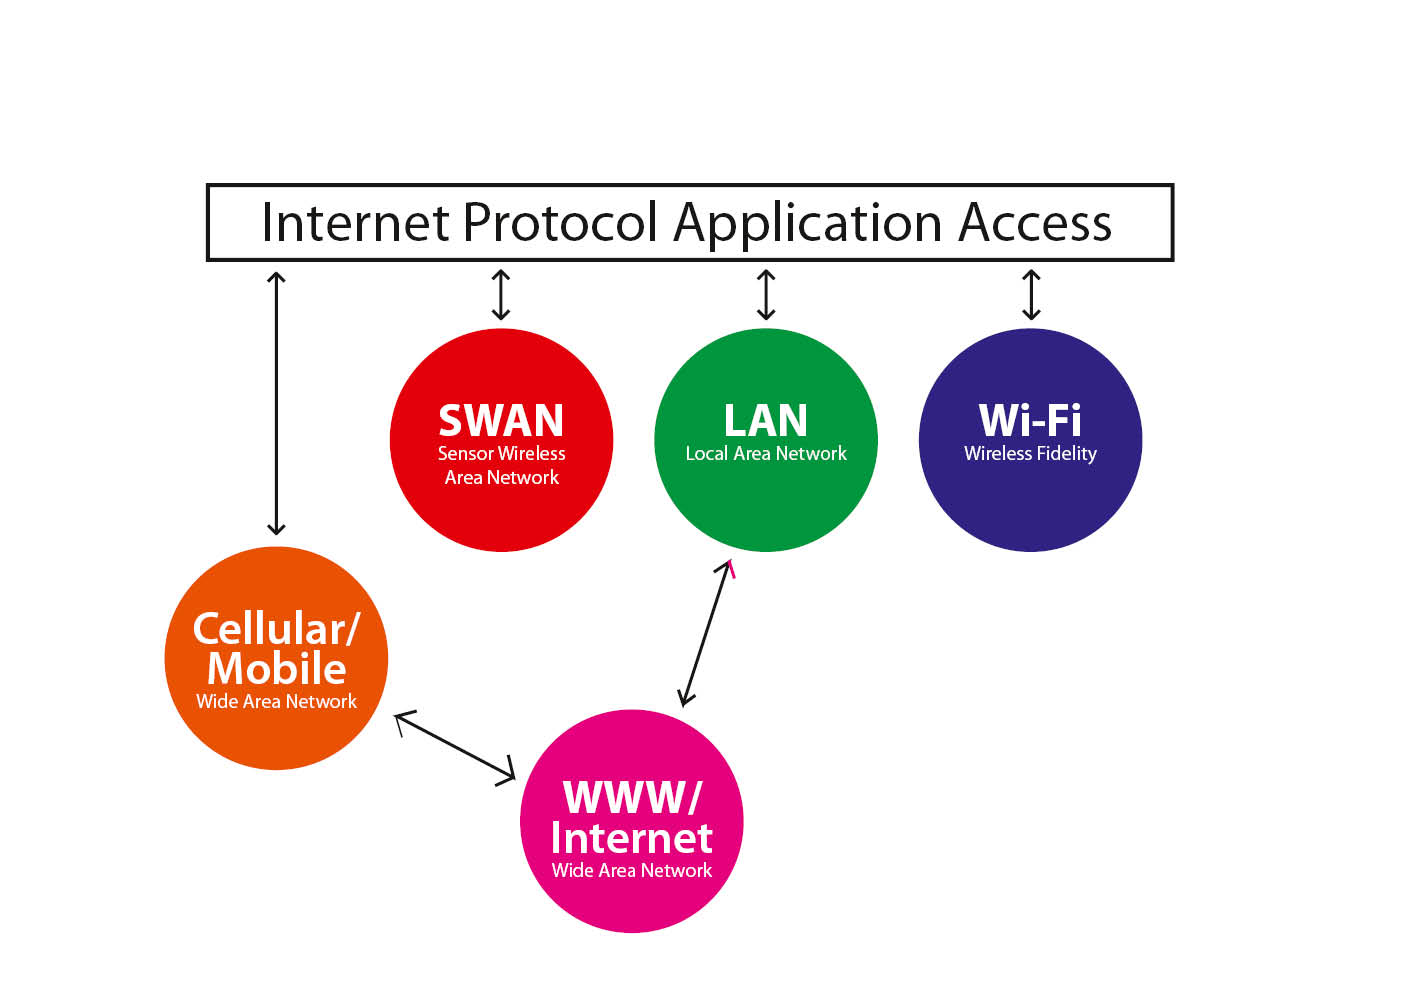 Internet Protocol Application Access